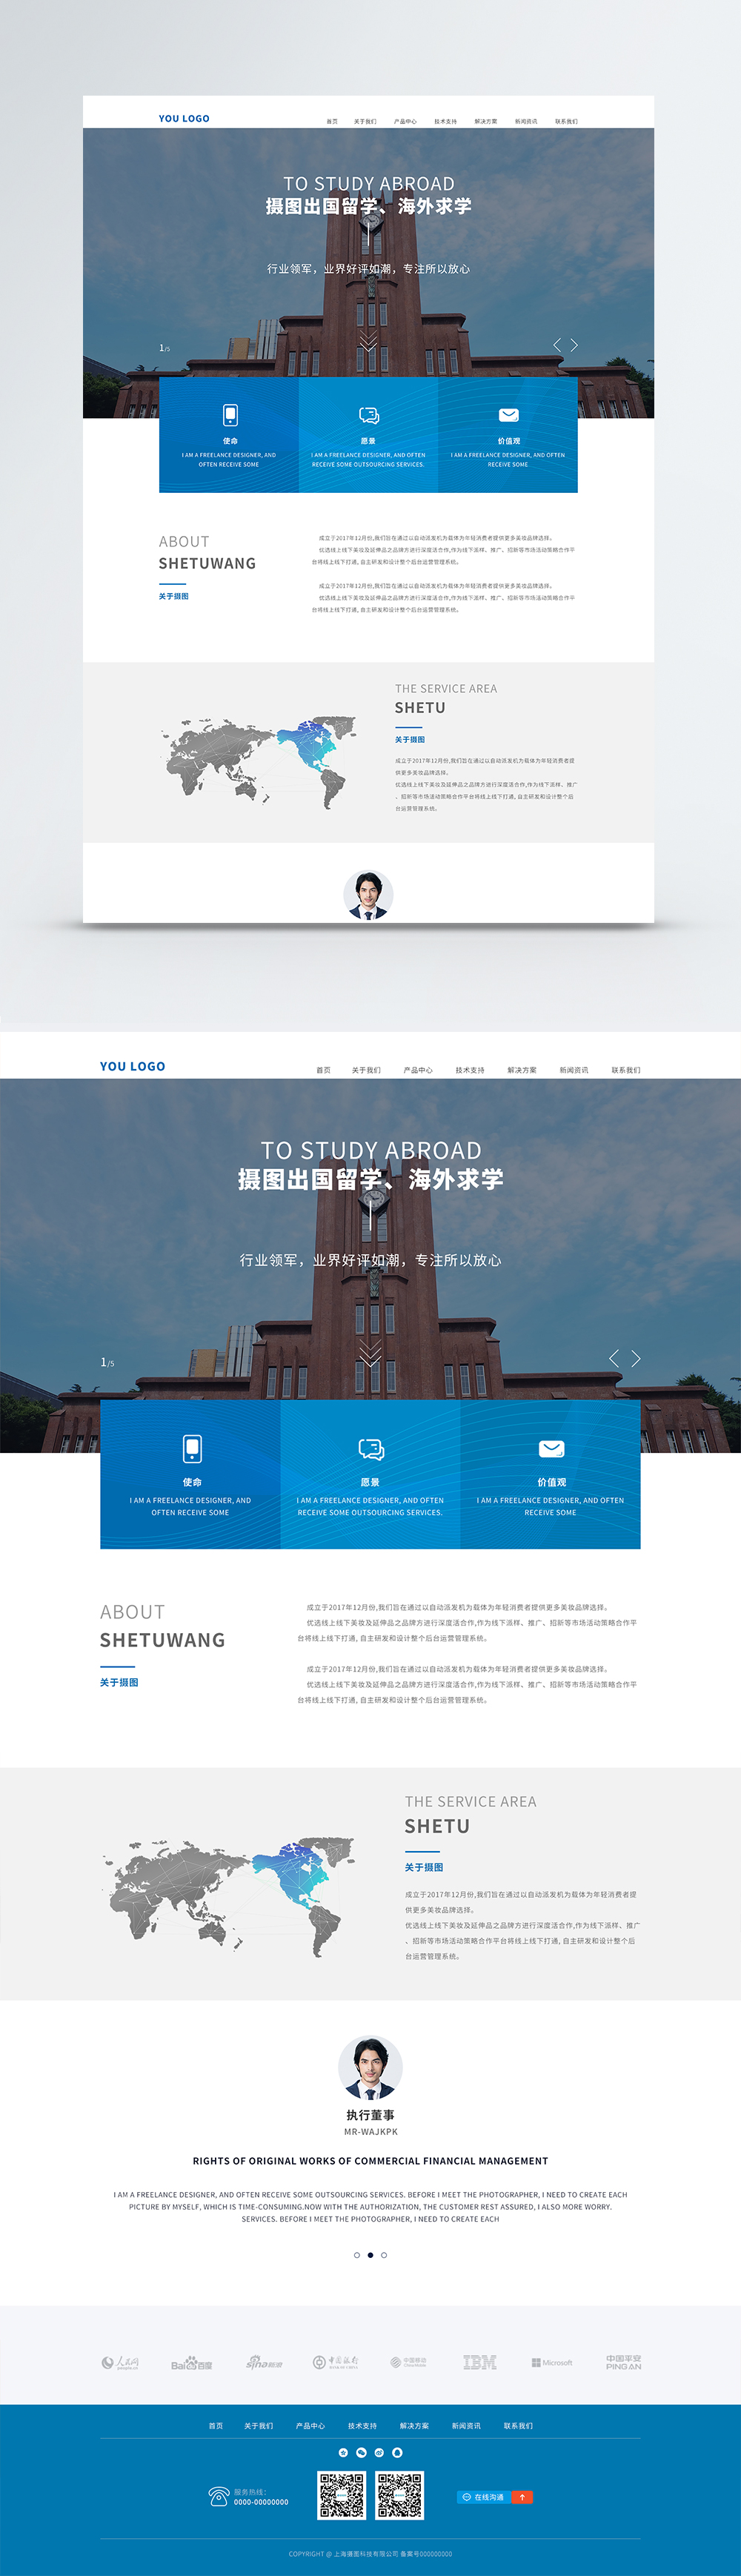 Ui design study abroad education training official website web d template  image_picture free download 401639452_lovepik.com